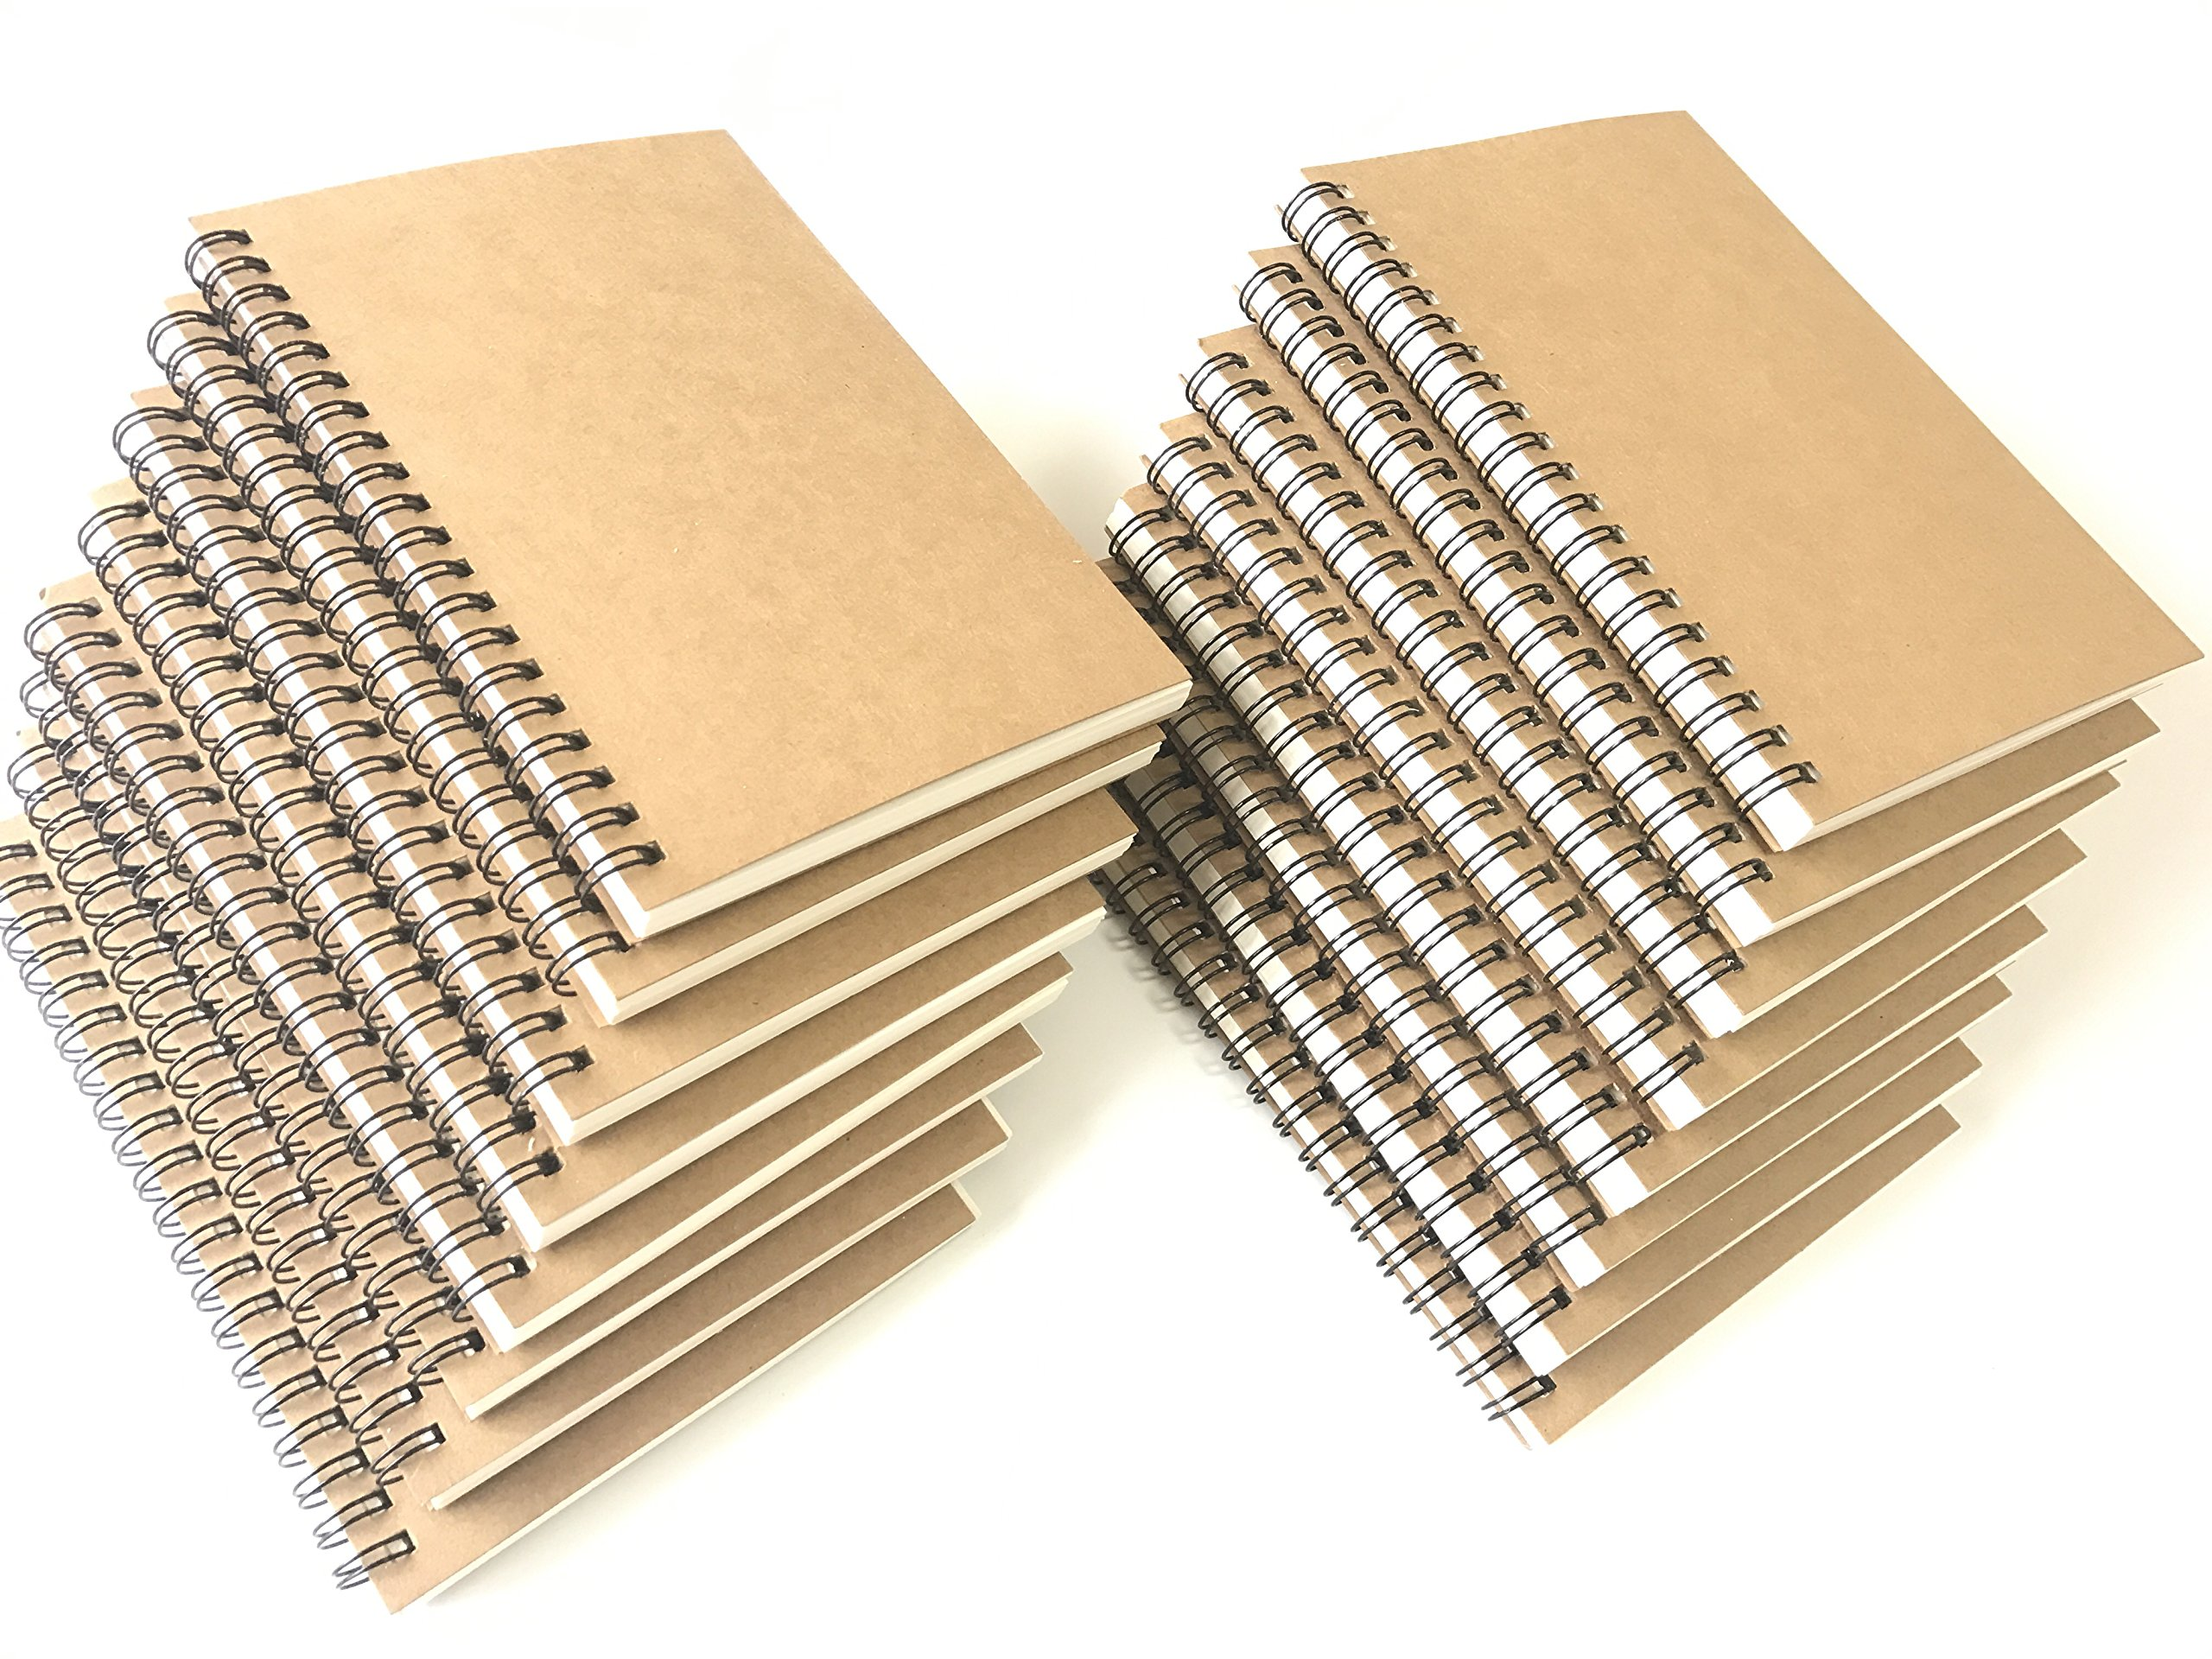 VEEPPO 16 Pack Bulk Notebooks and Journals Spiral Notebooks 4.7x7inch Small Sketch Books Mini Sketch Note Pads Kraft Cardboard Cover Thick Blank White Paper (White Page-Pack of 16)